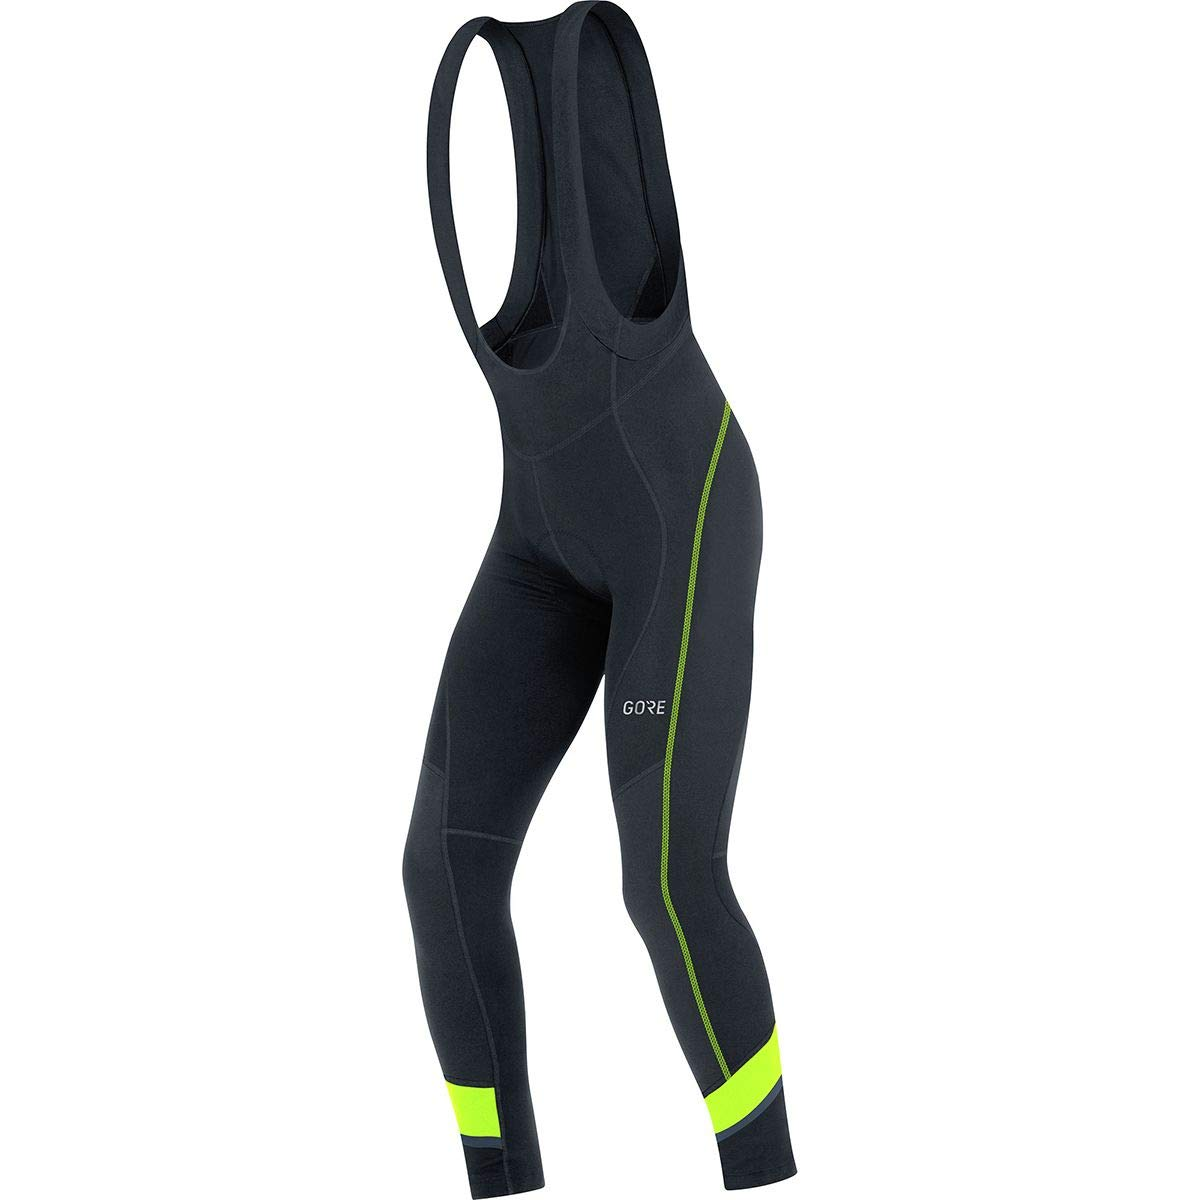 GORE WEAR Men's Breathable, Long Cycling bib Tights, with seat Insert, C5 Thermo Bib Tights+, XXL, Black/Neon-Yellow, 100365